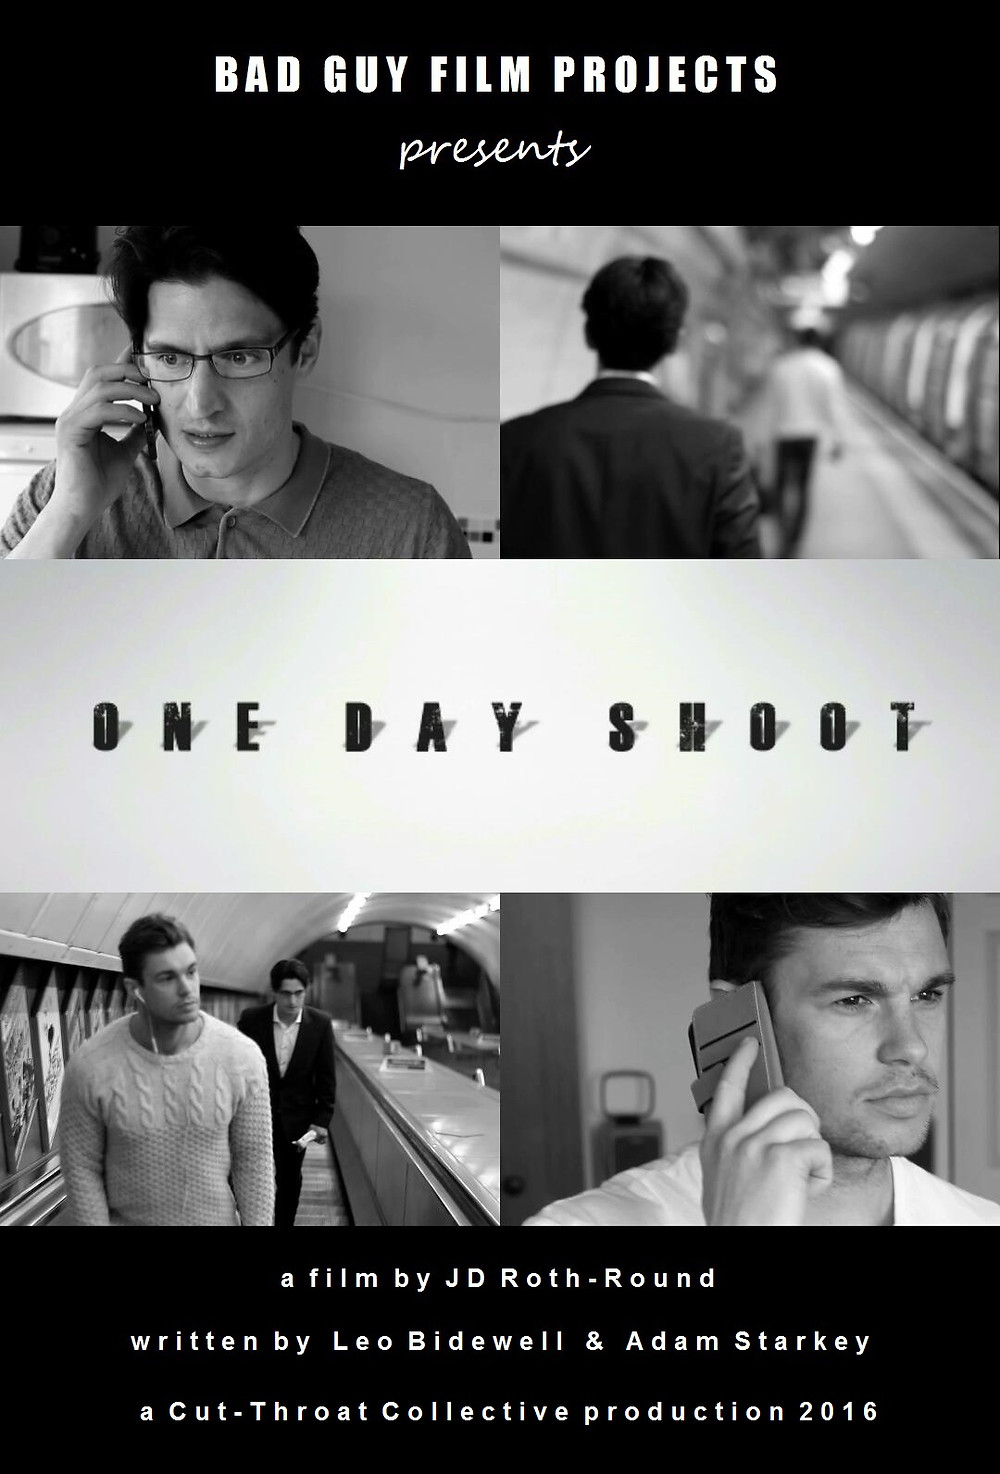 Poster for One Day Shoot showing protagonists.